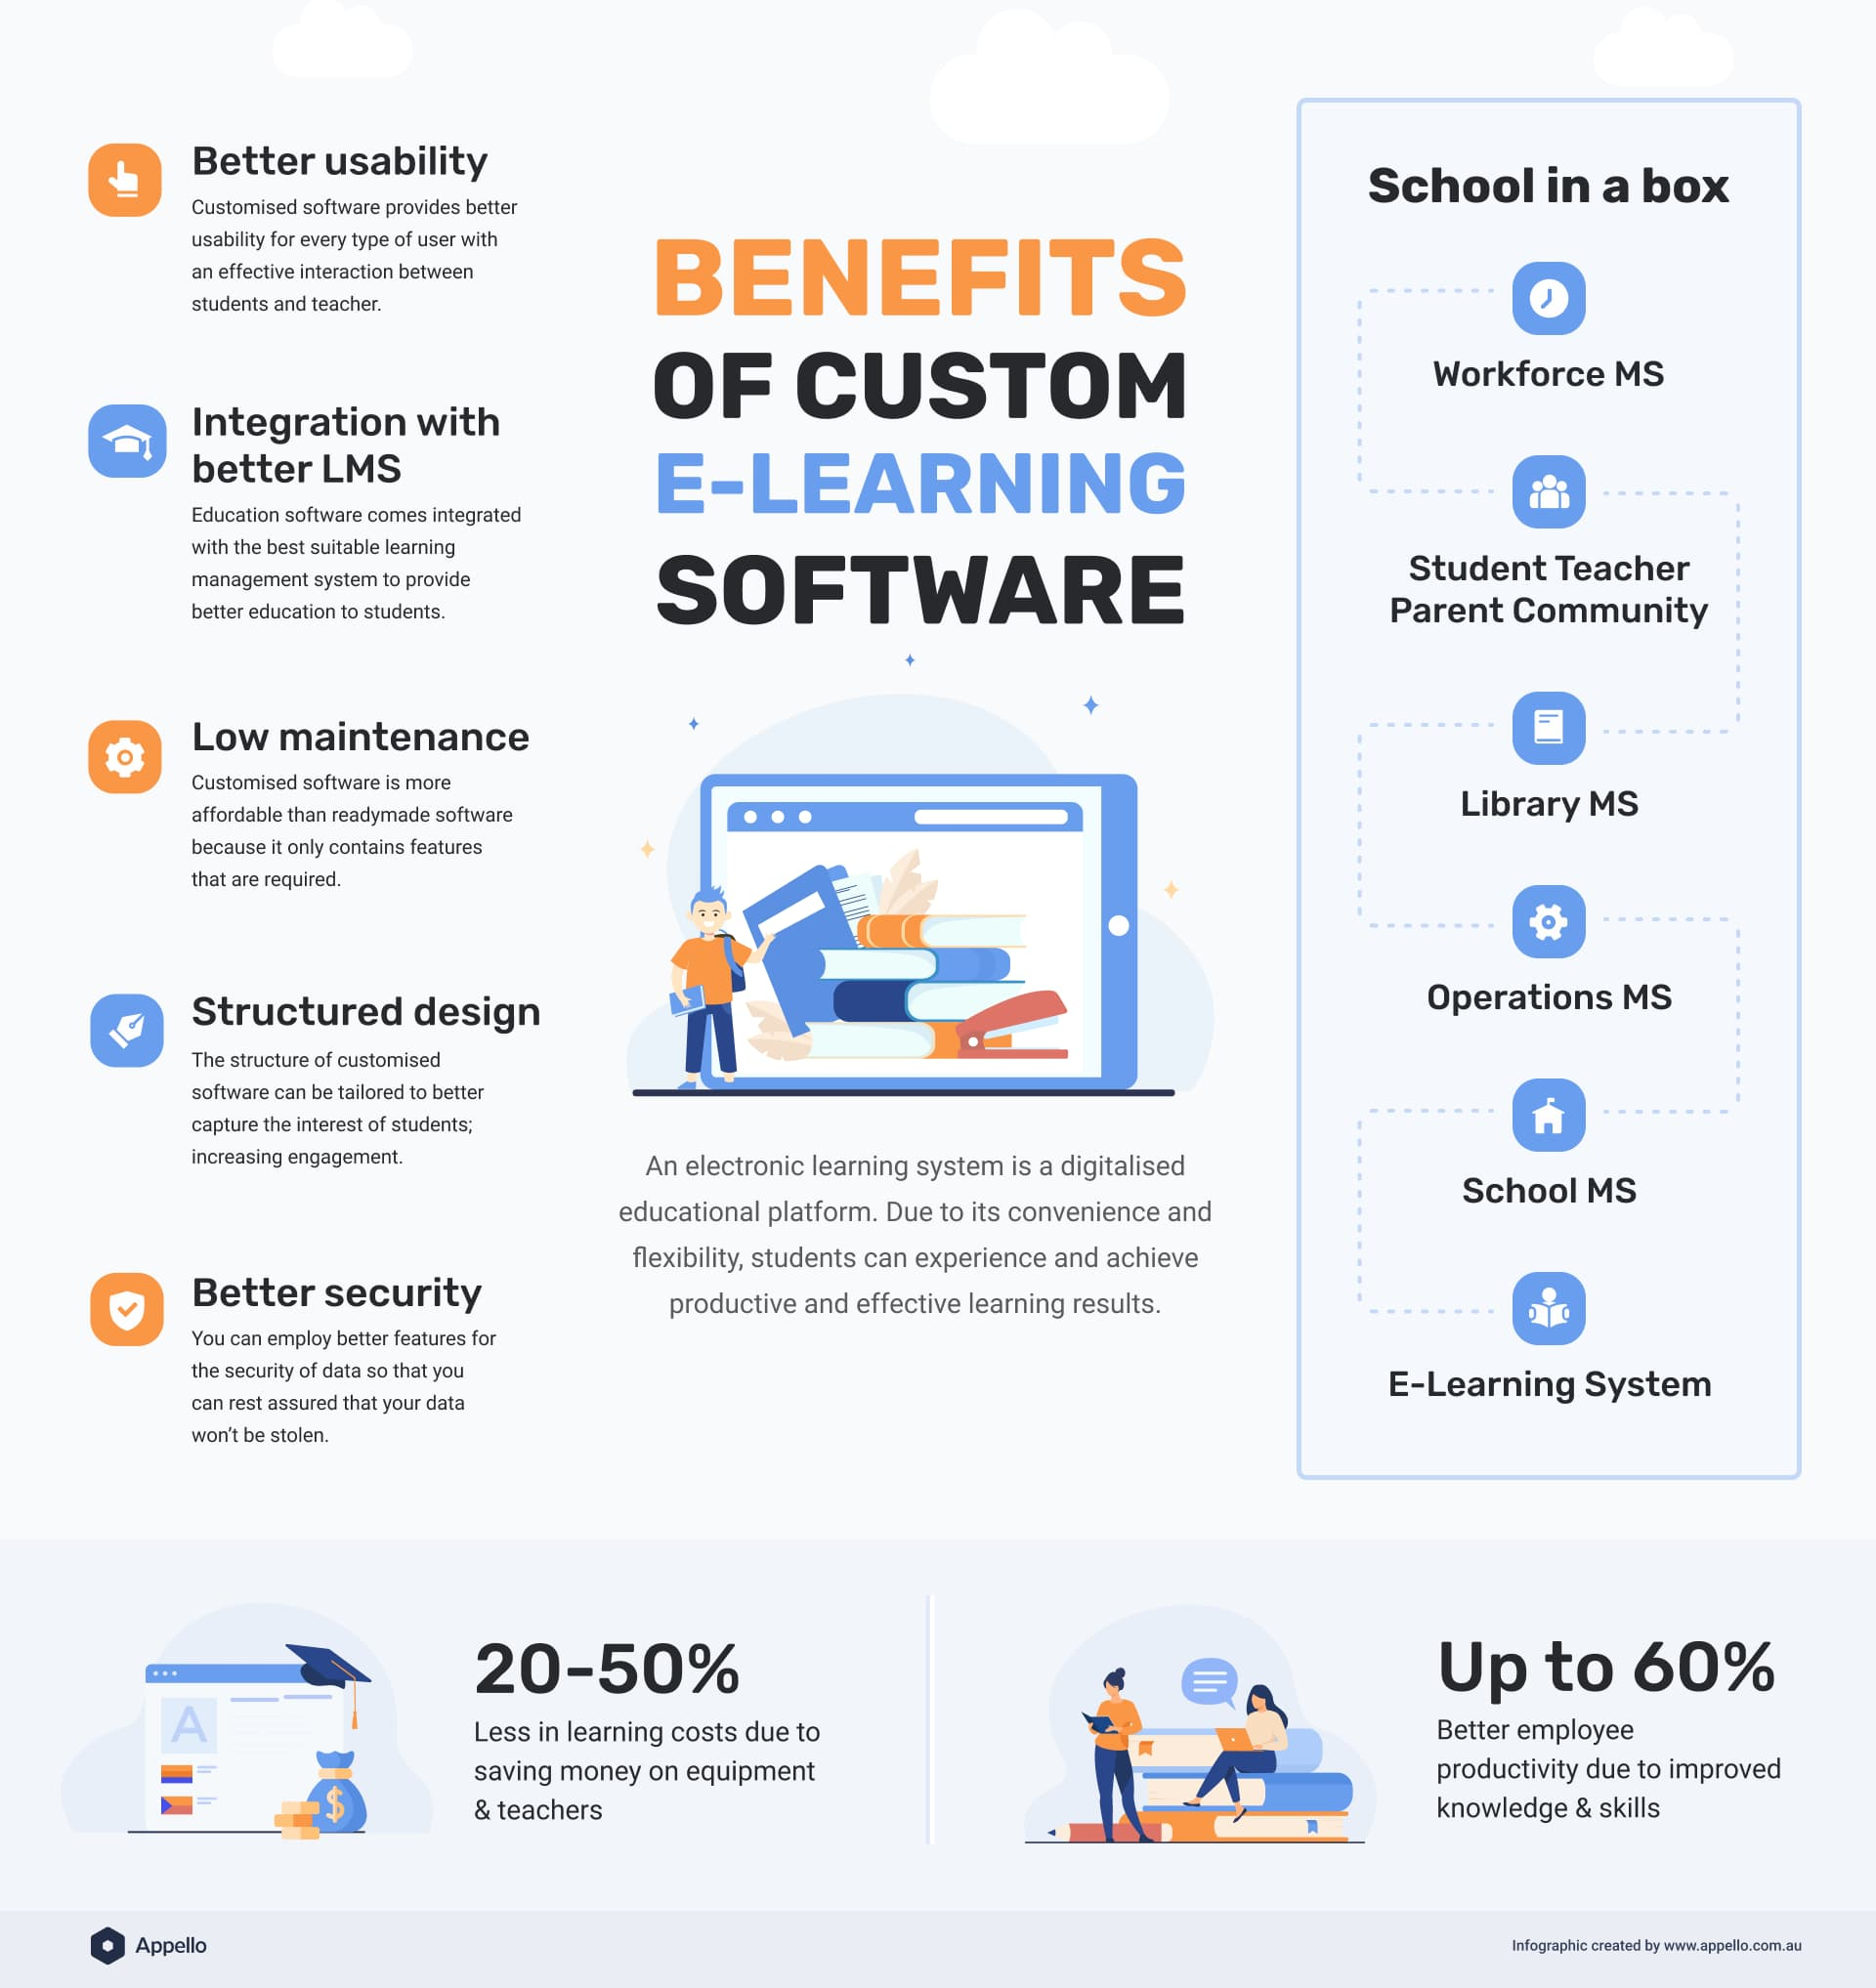 Infographic about the benefits of custom e-learning software. school in a box representation and educational benefits of edtech